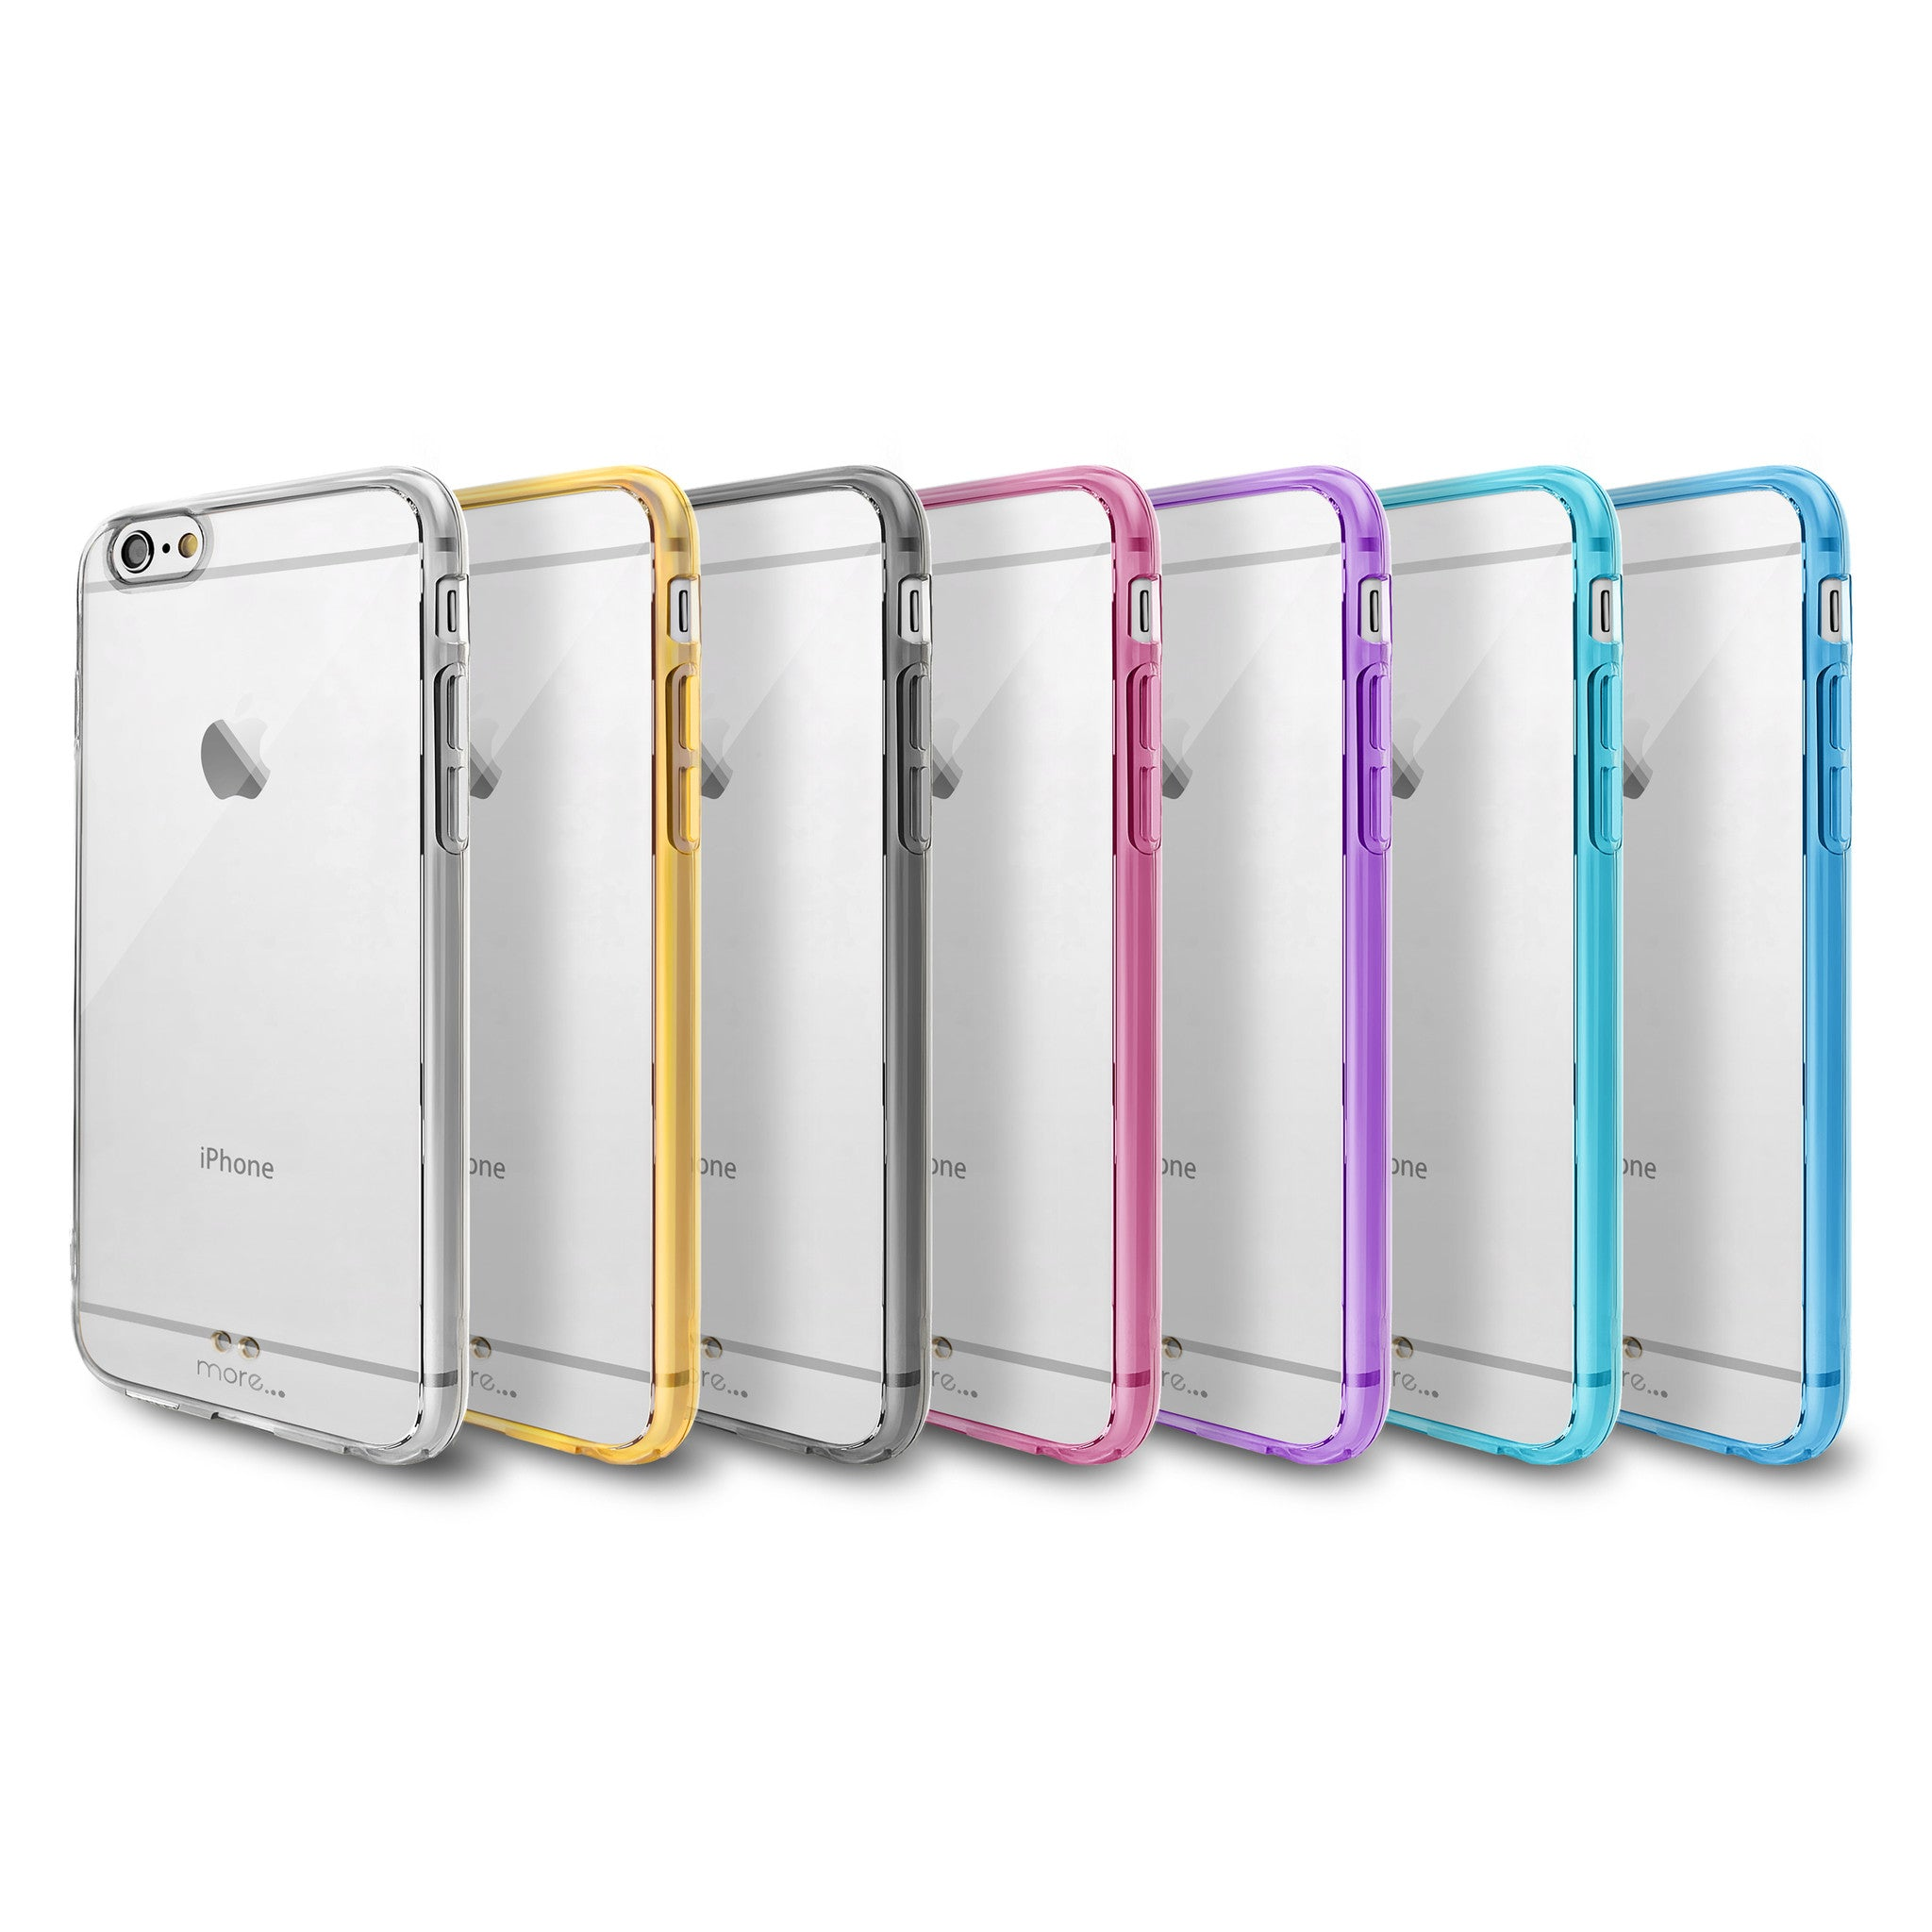 more iphone 6 case